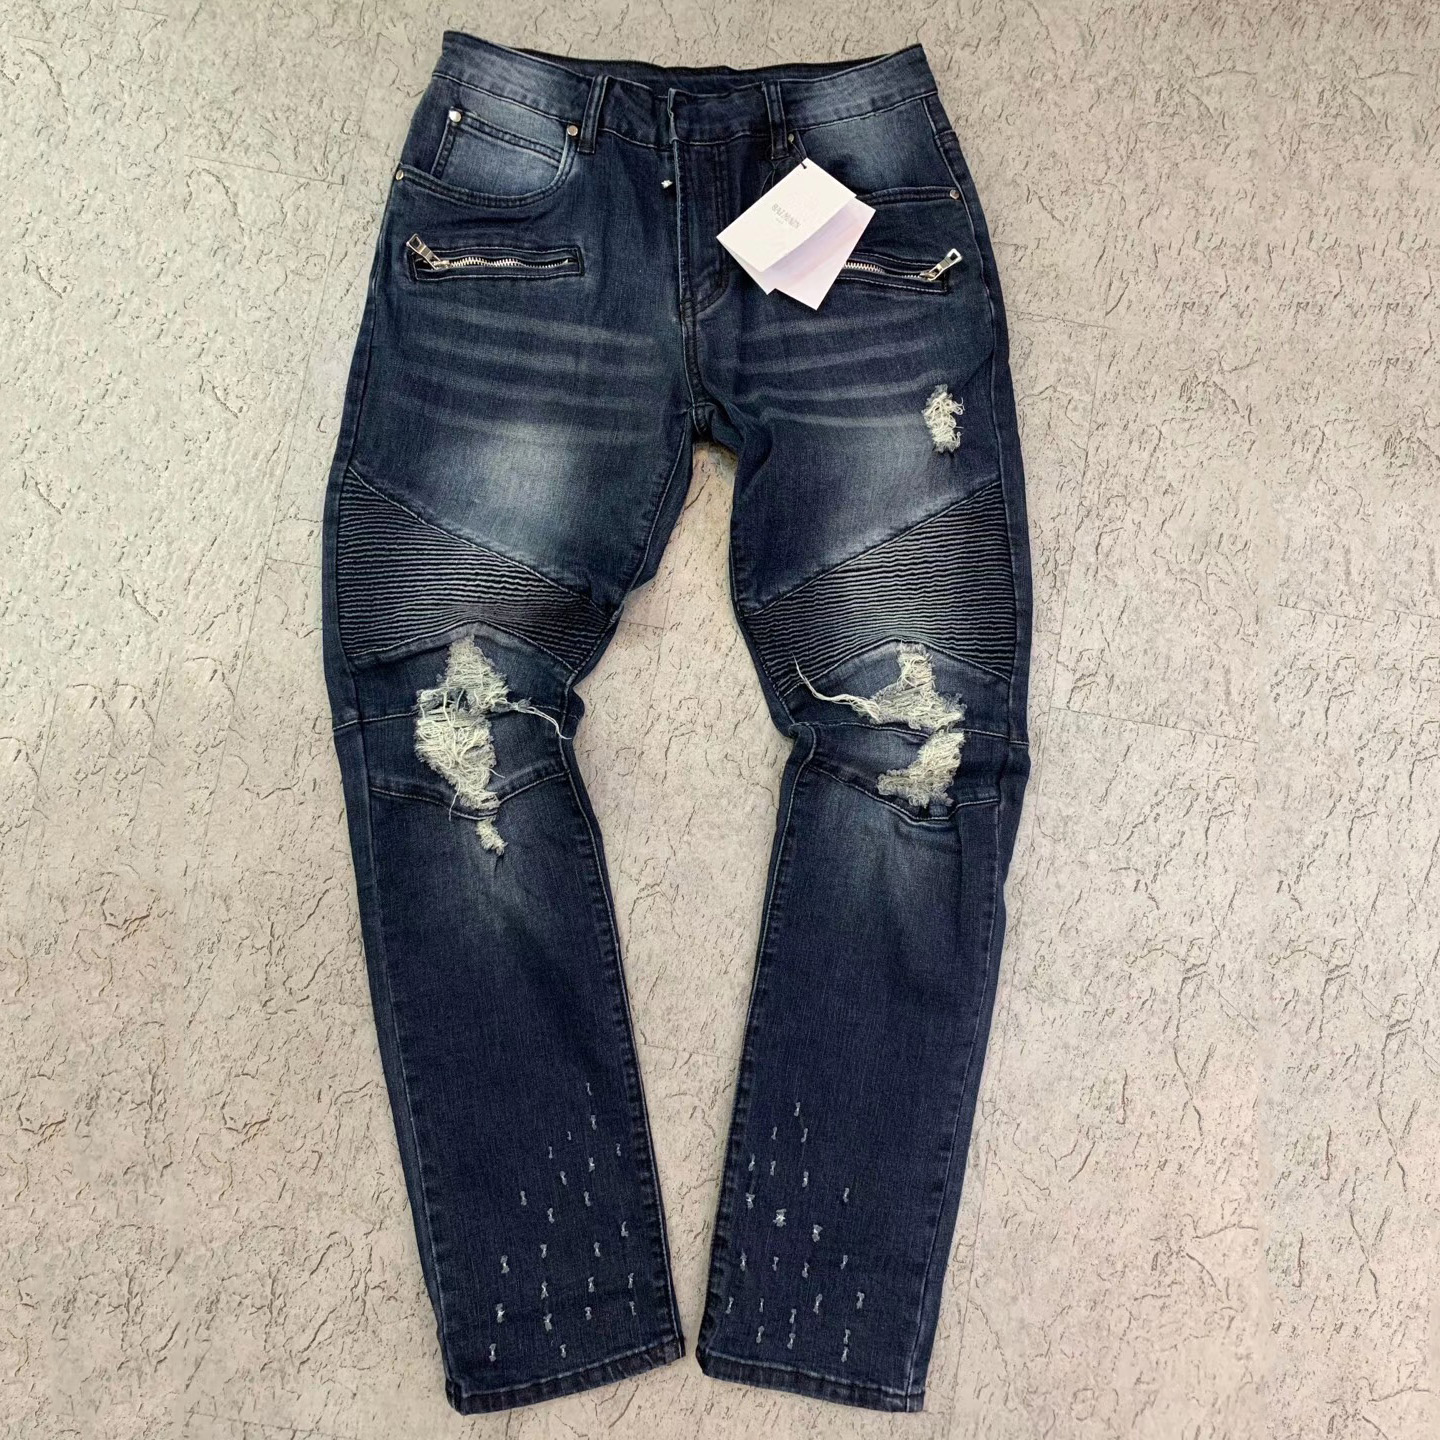 Slim-fit Jeans 1086 - FashionBeast